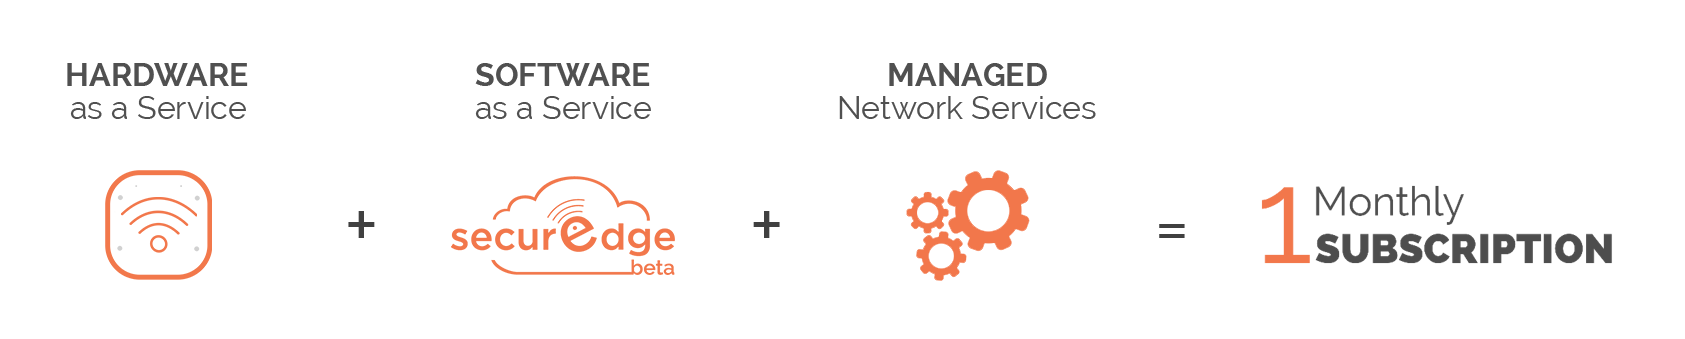 SecurEdge-Subscriptions-Managed-WiFi-Solution-Stack-Overview-Graphic